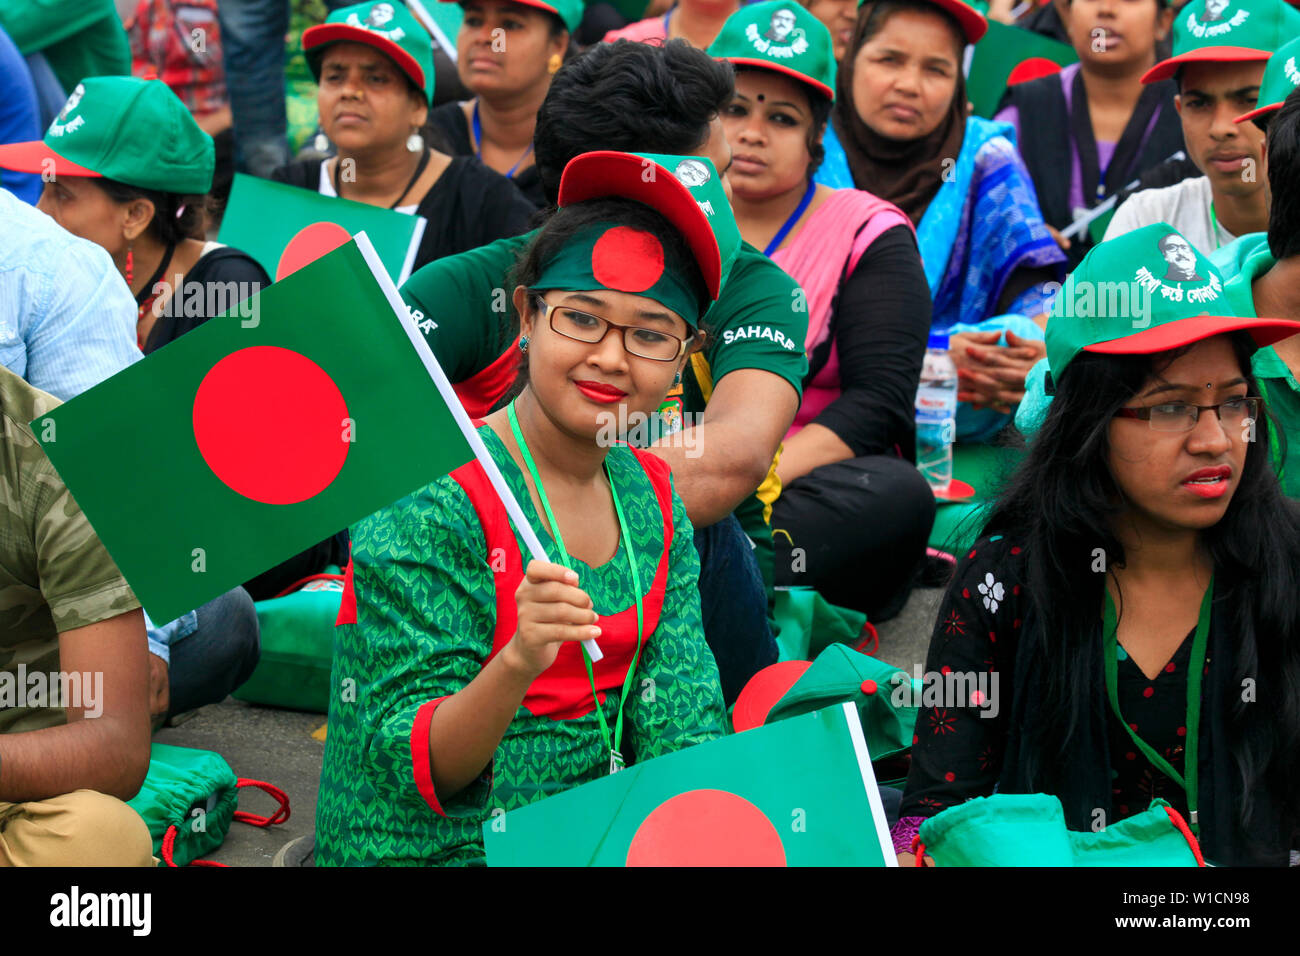 """Women participate in the event titled """"Lakho Konthe Shonar Bangla"""". Over 2.5 lakh people chorus national anthem at National Parade Square in a bid to Stock Photo"""